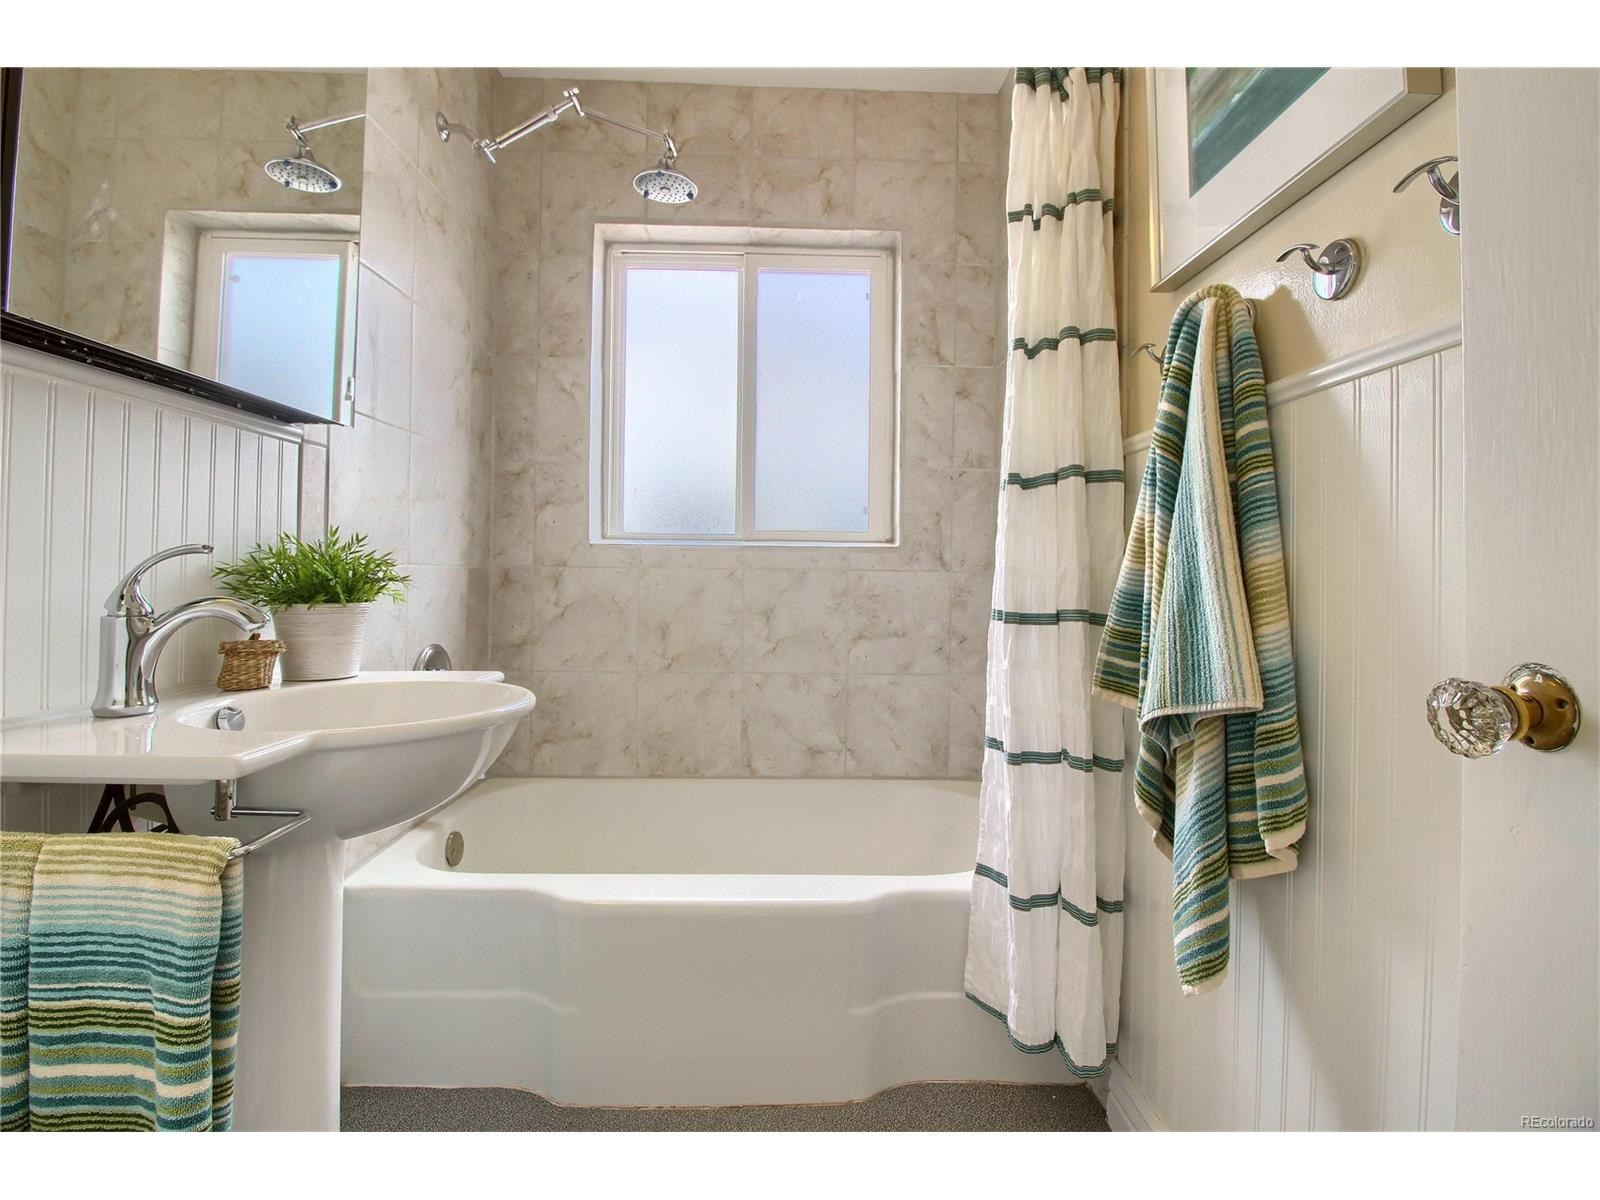 Teal and white bath by Jodi Maturo